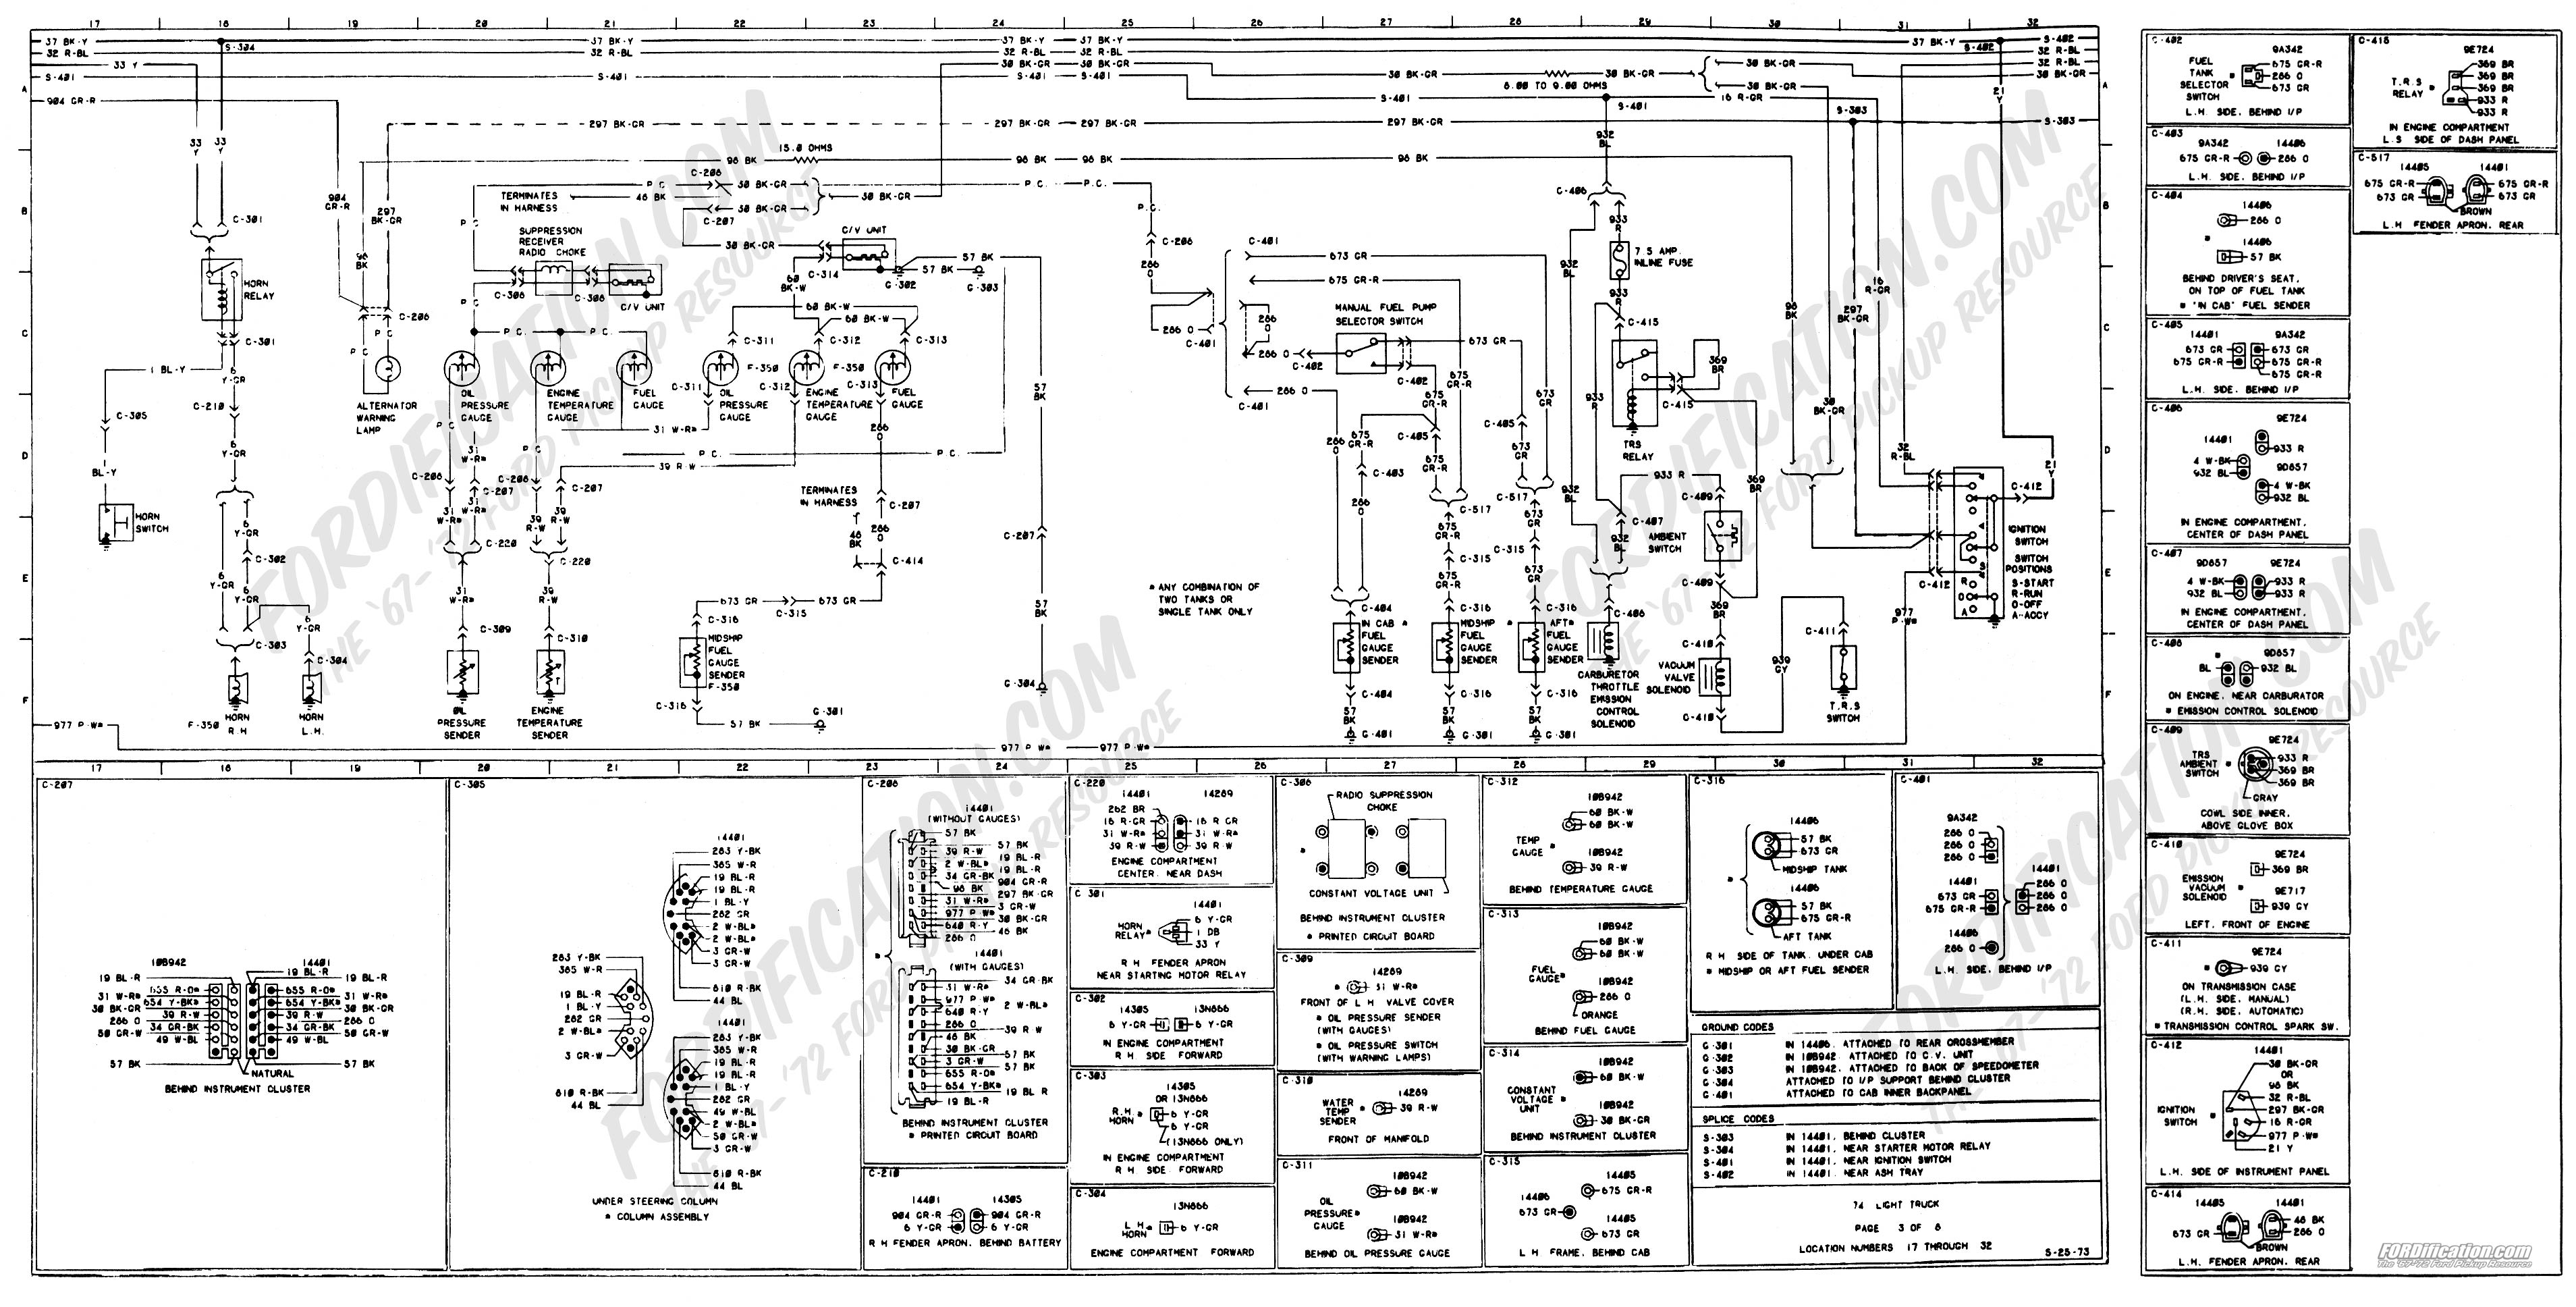 wiring_74master_3of8 1973 1979 ford truck wiring diagrams & schematics fordification net 1979 ford truck fuse box diagram at gsmportal.co